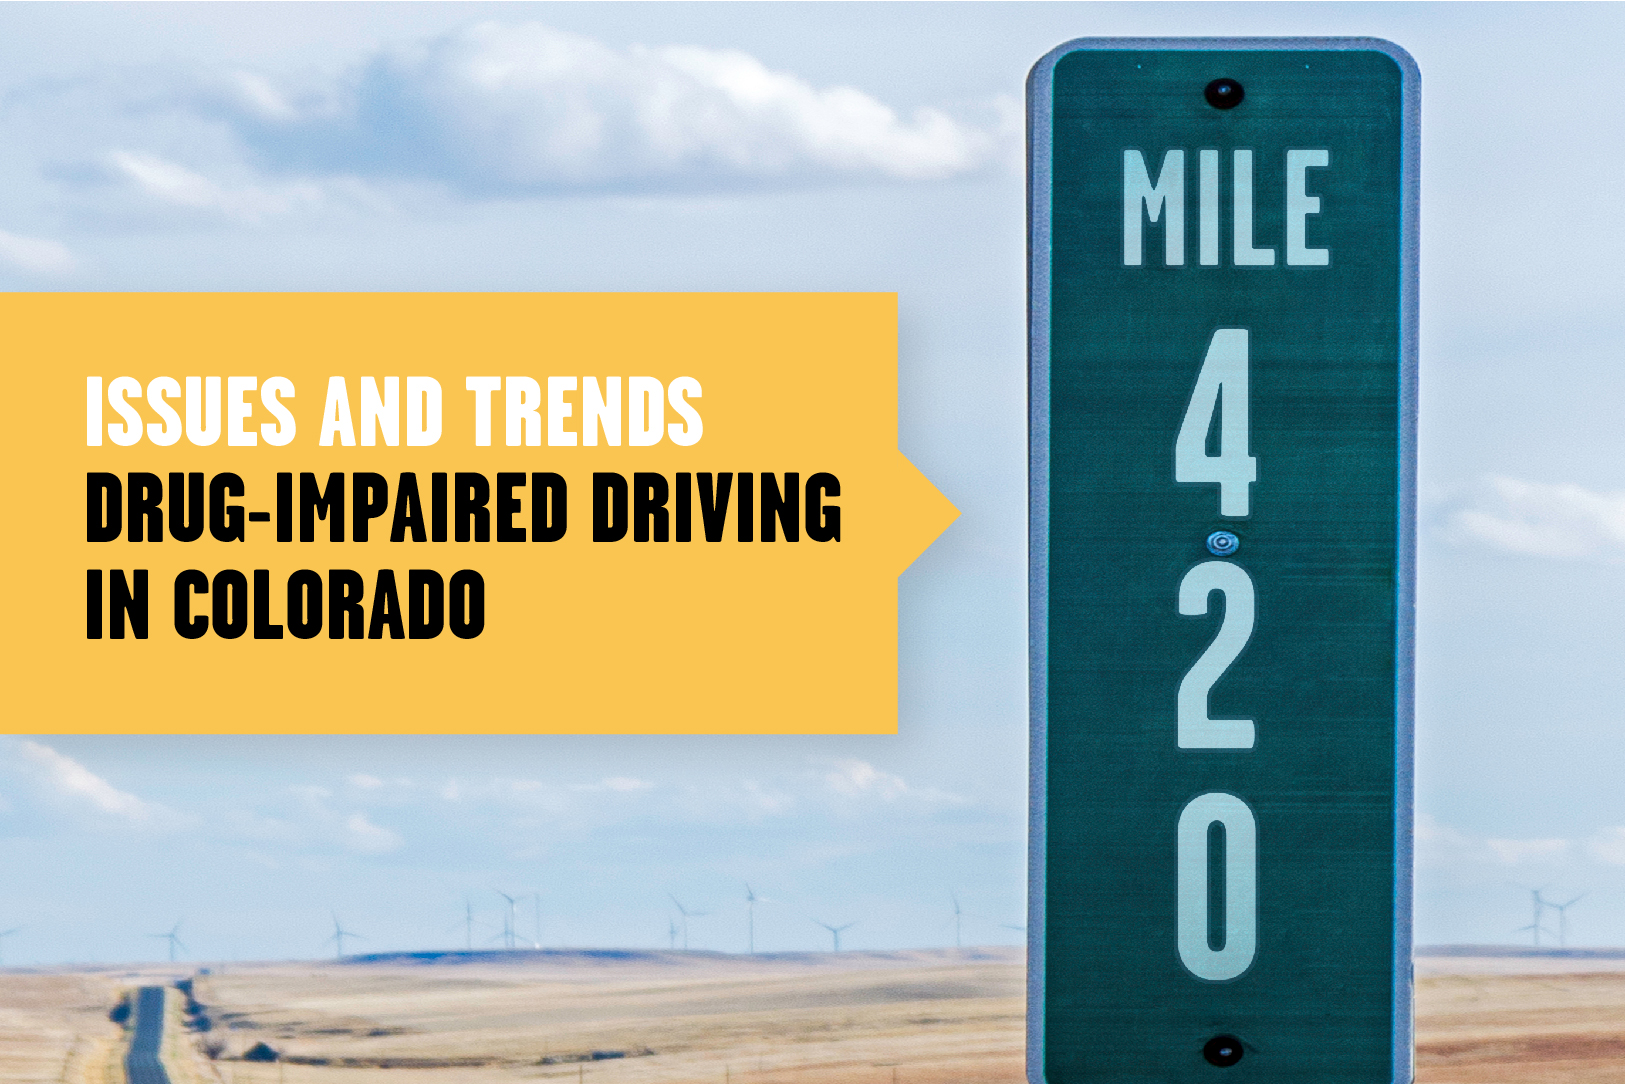 Issues on drugged-impaired driving in colorado, 420 mile marker sign